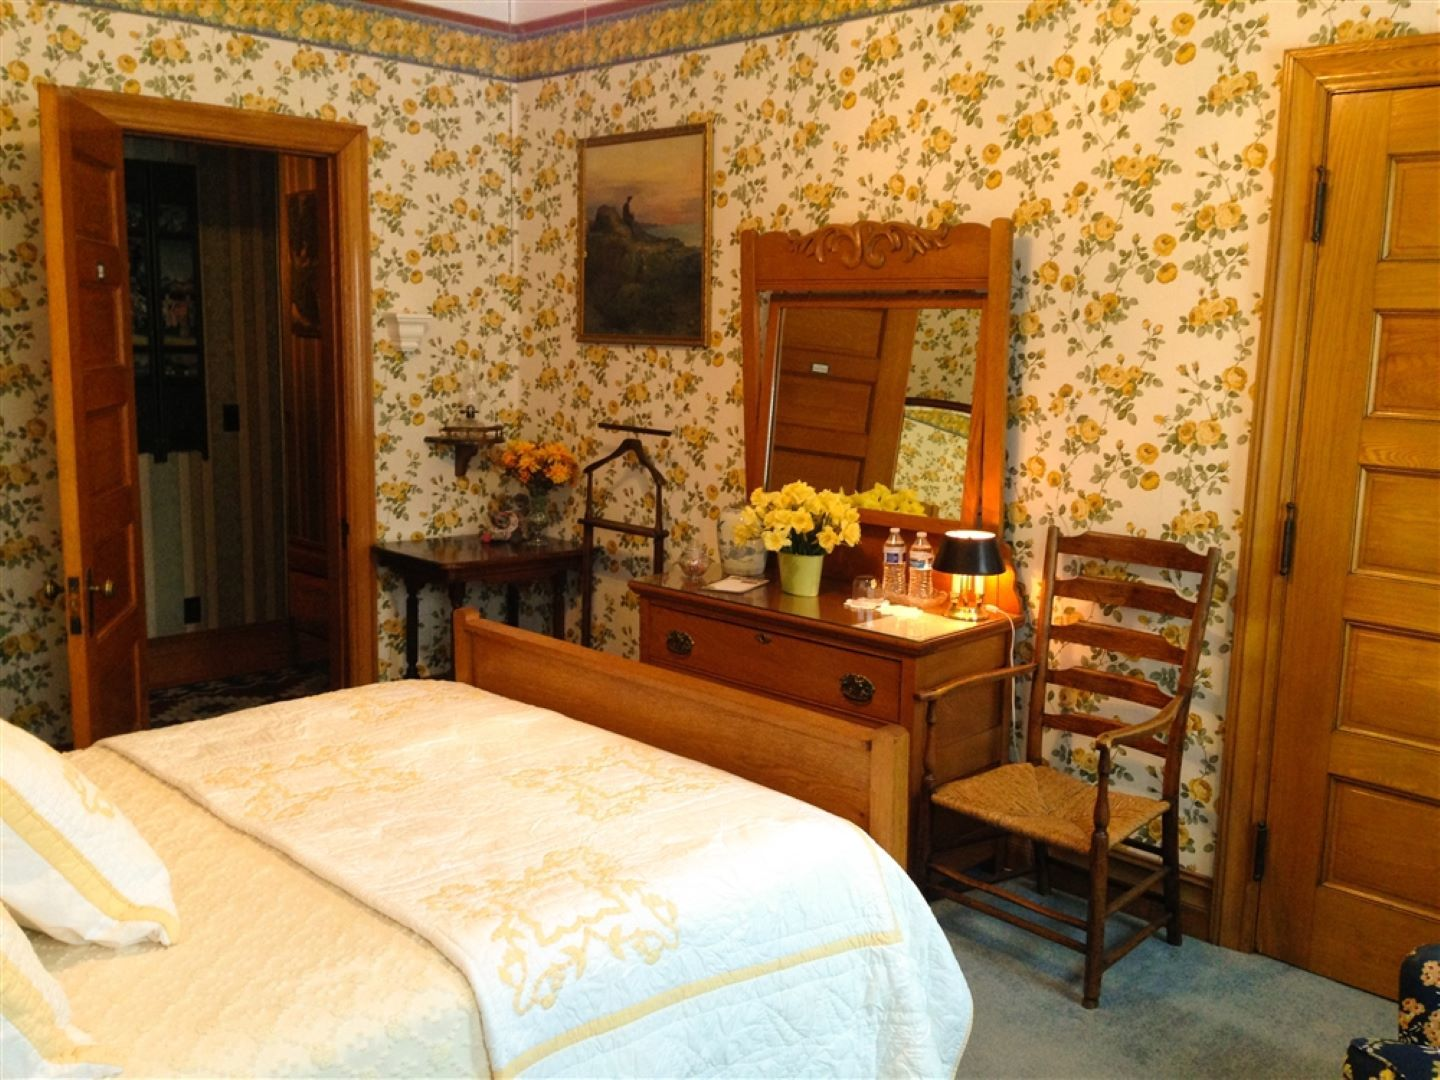 A bedroom with a bed and desk in a room at The Dempsey Manor Inn.